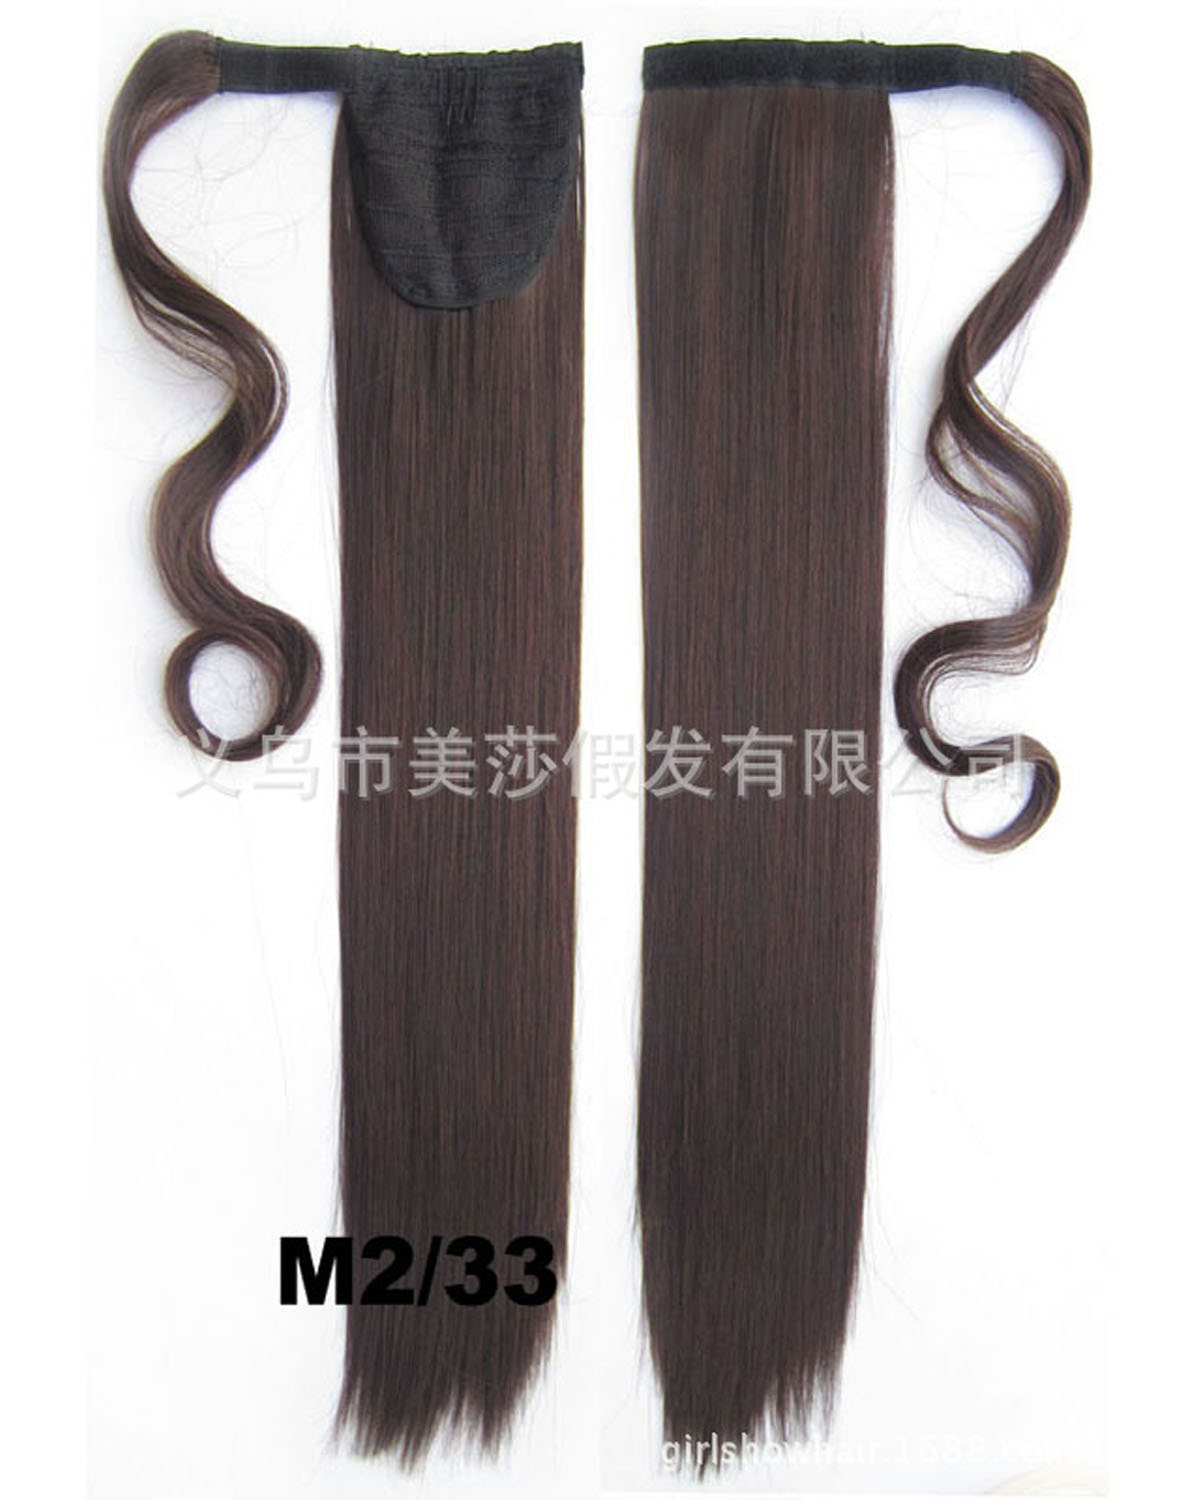 22 Inch Women Outstanding Straight and Long Wrap Around Synthetic Hair Ponytail M2/33#